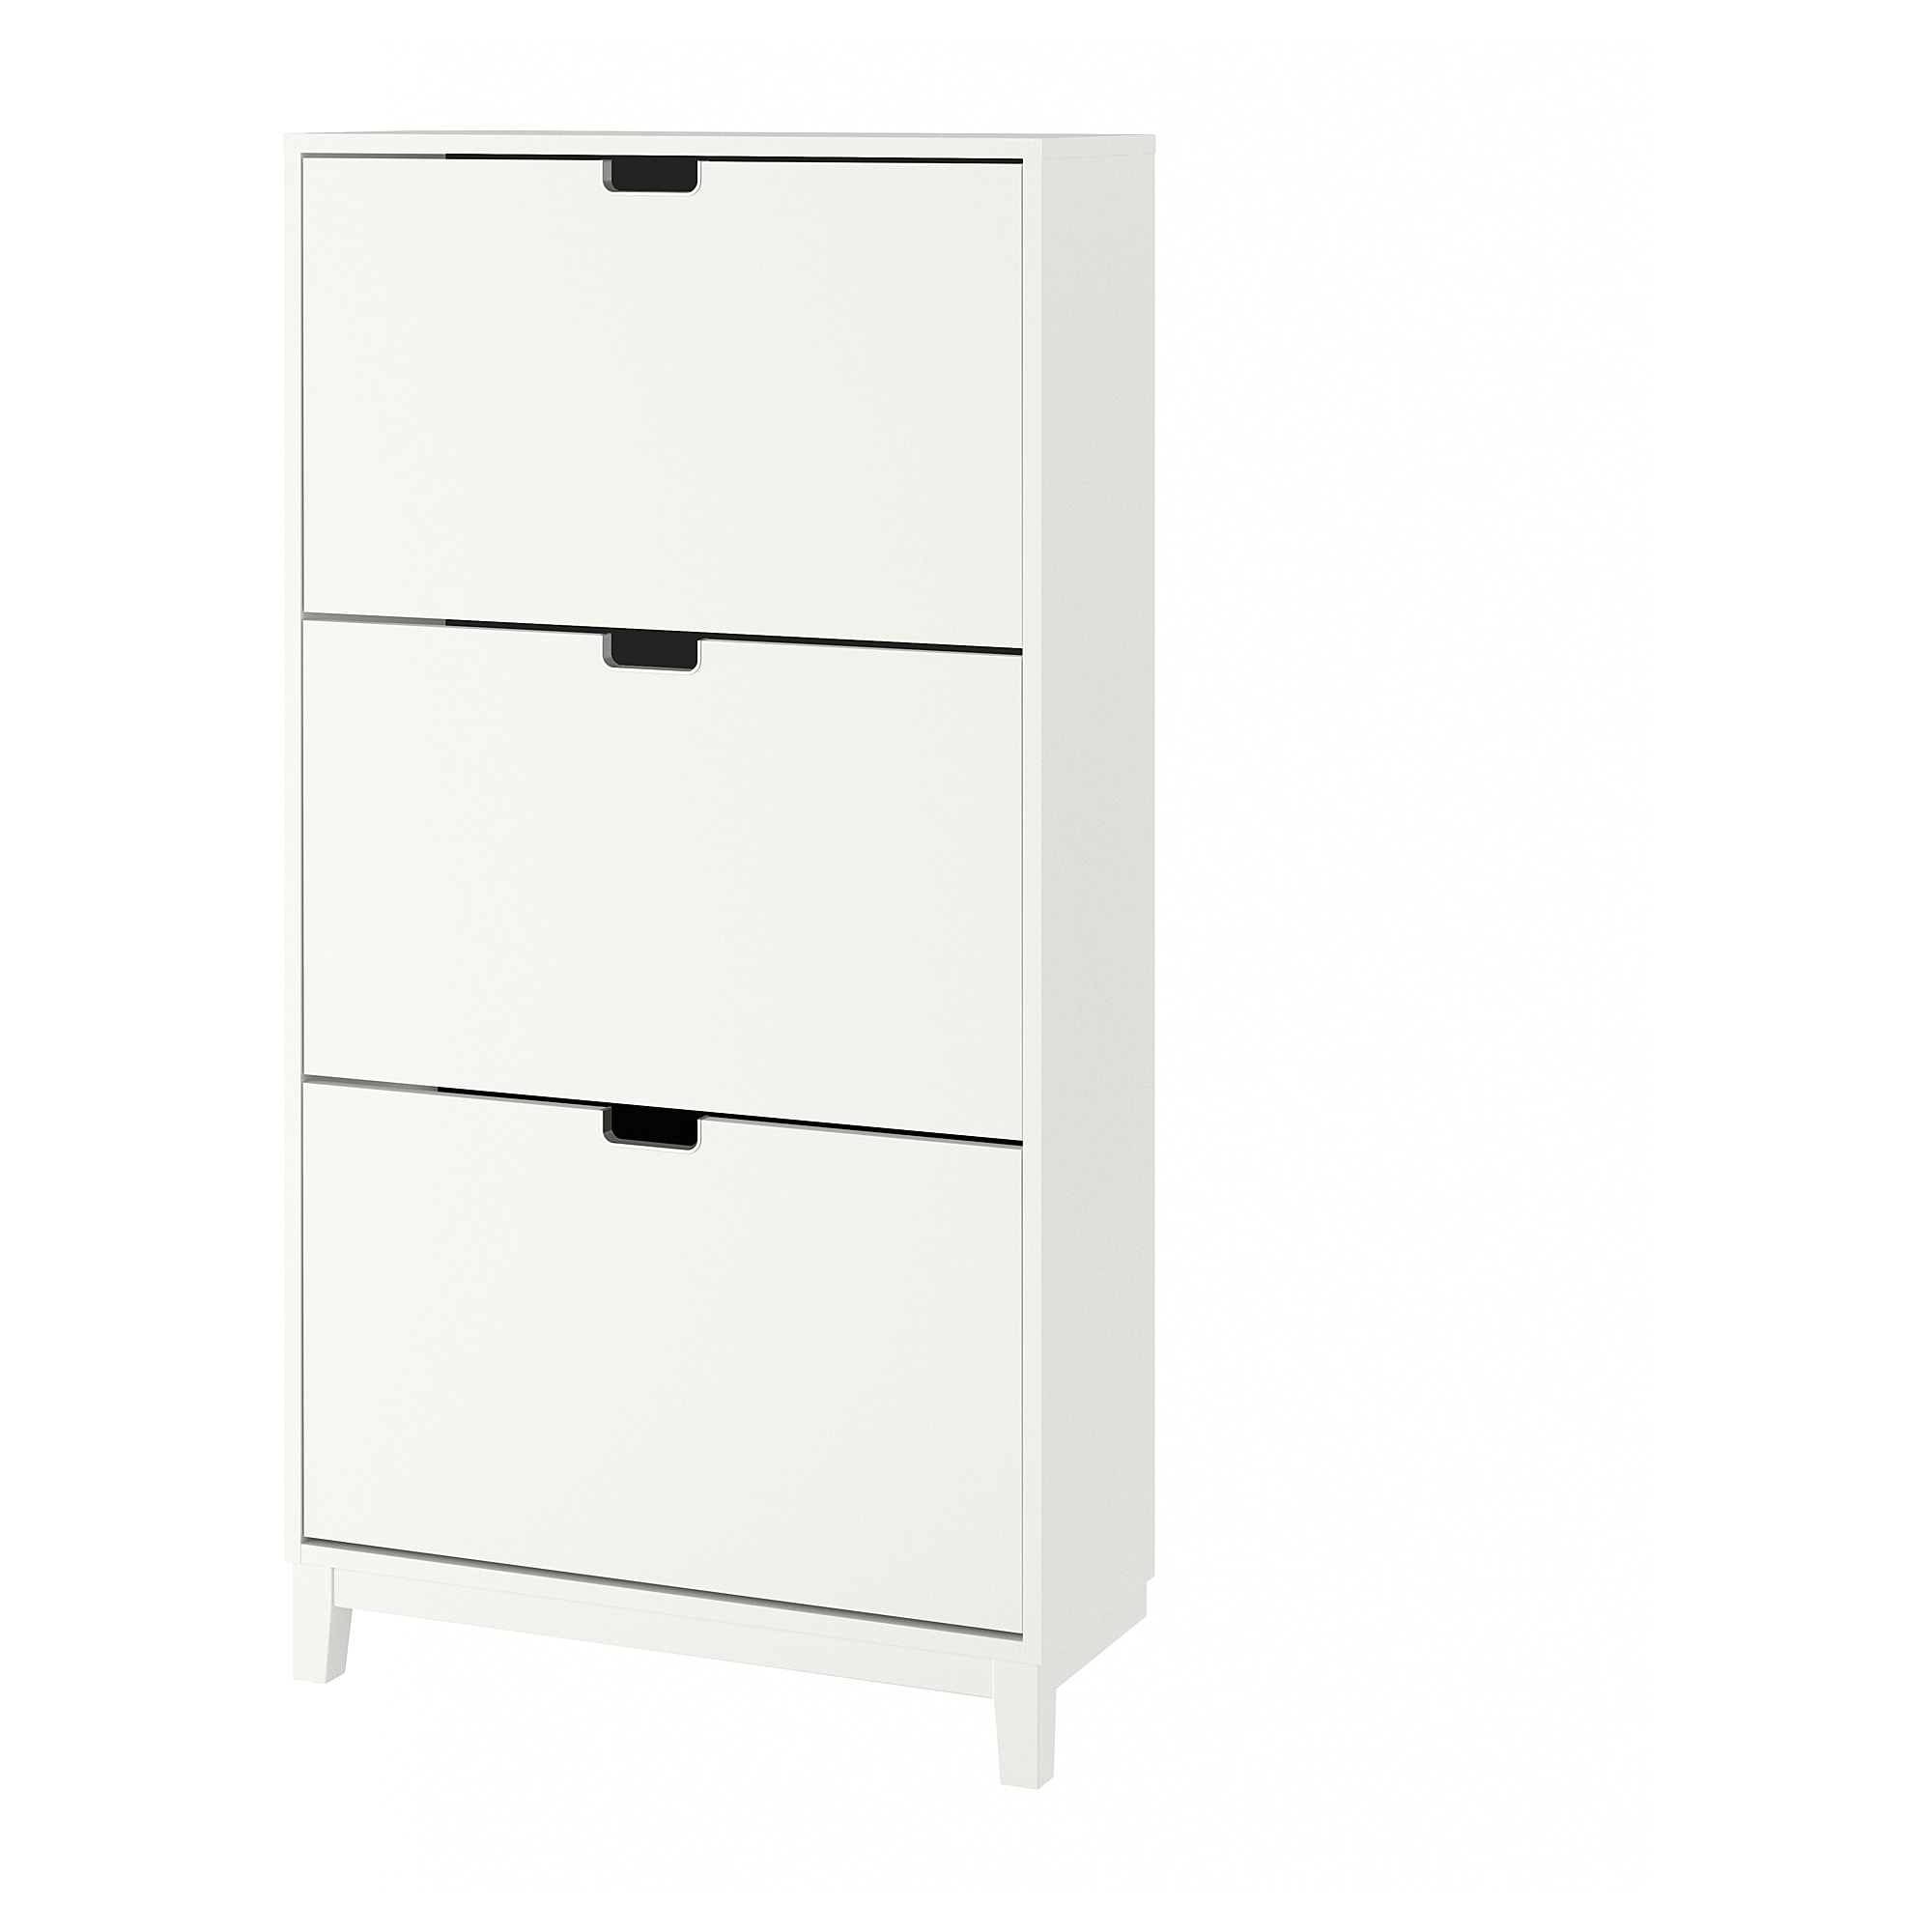 Shoe cabinet with 3 compartments STÄLL white